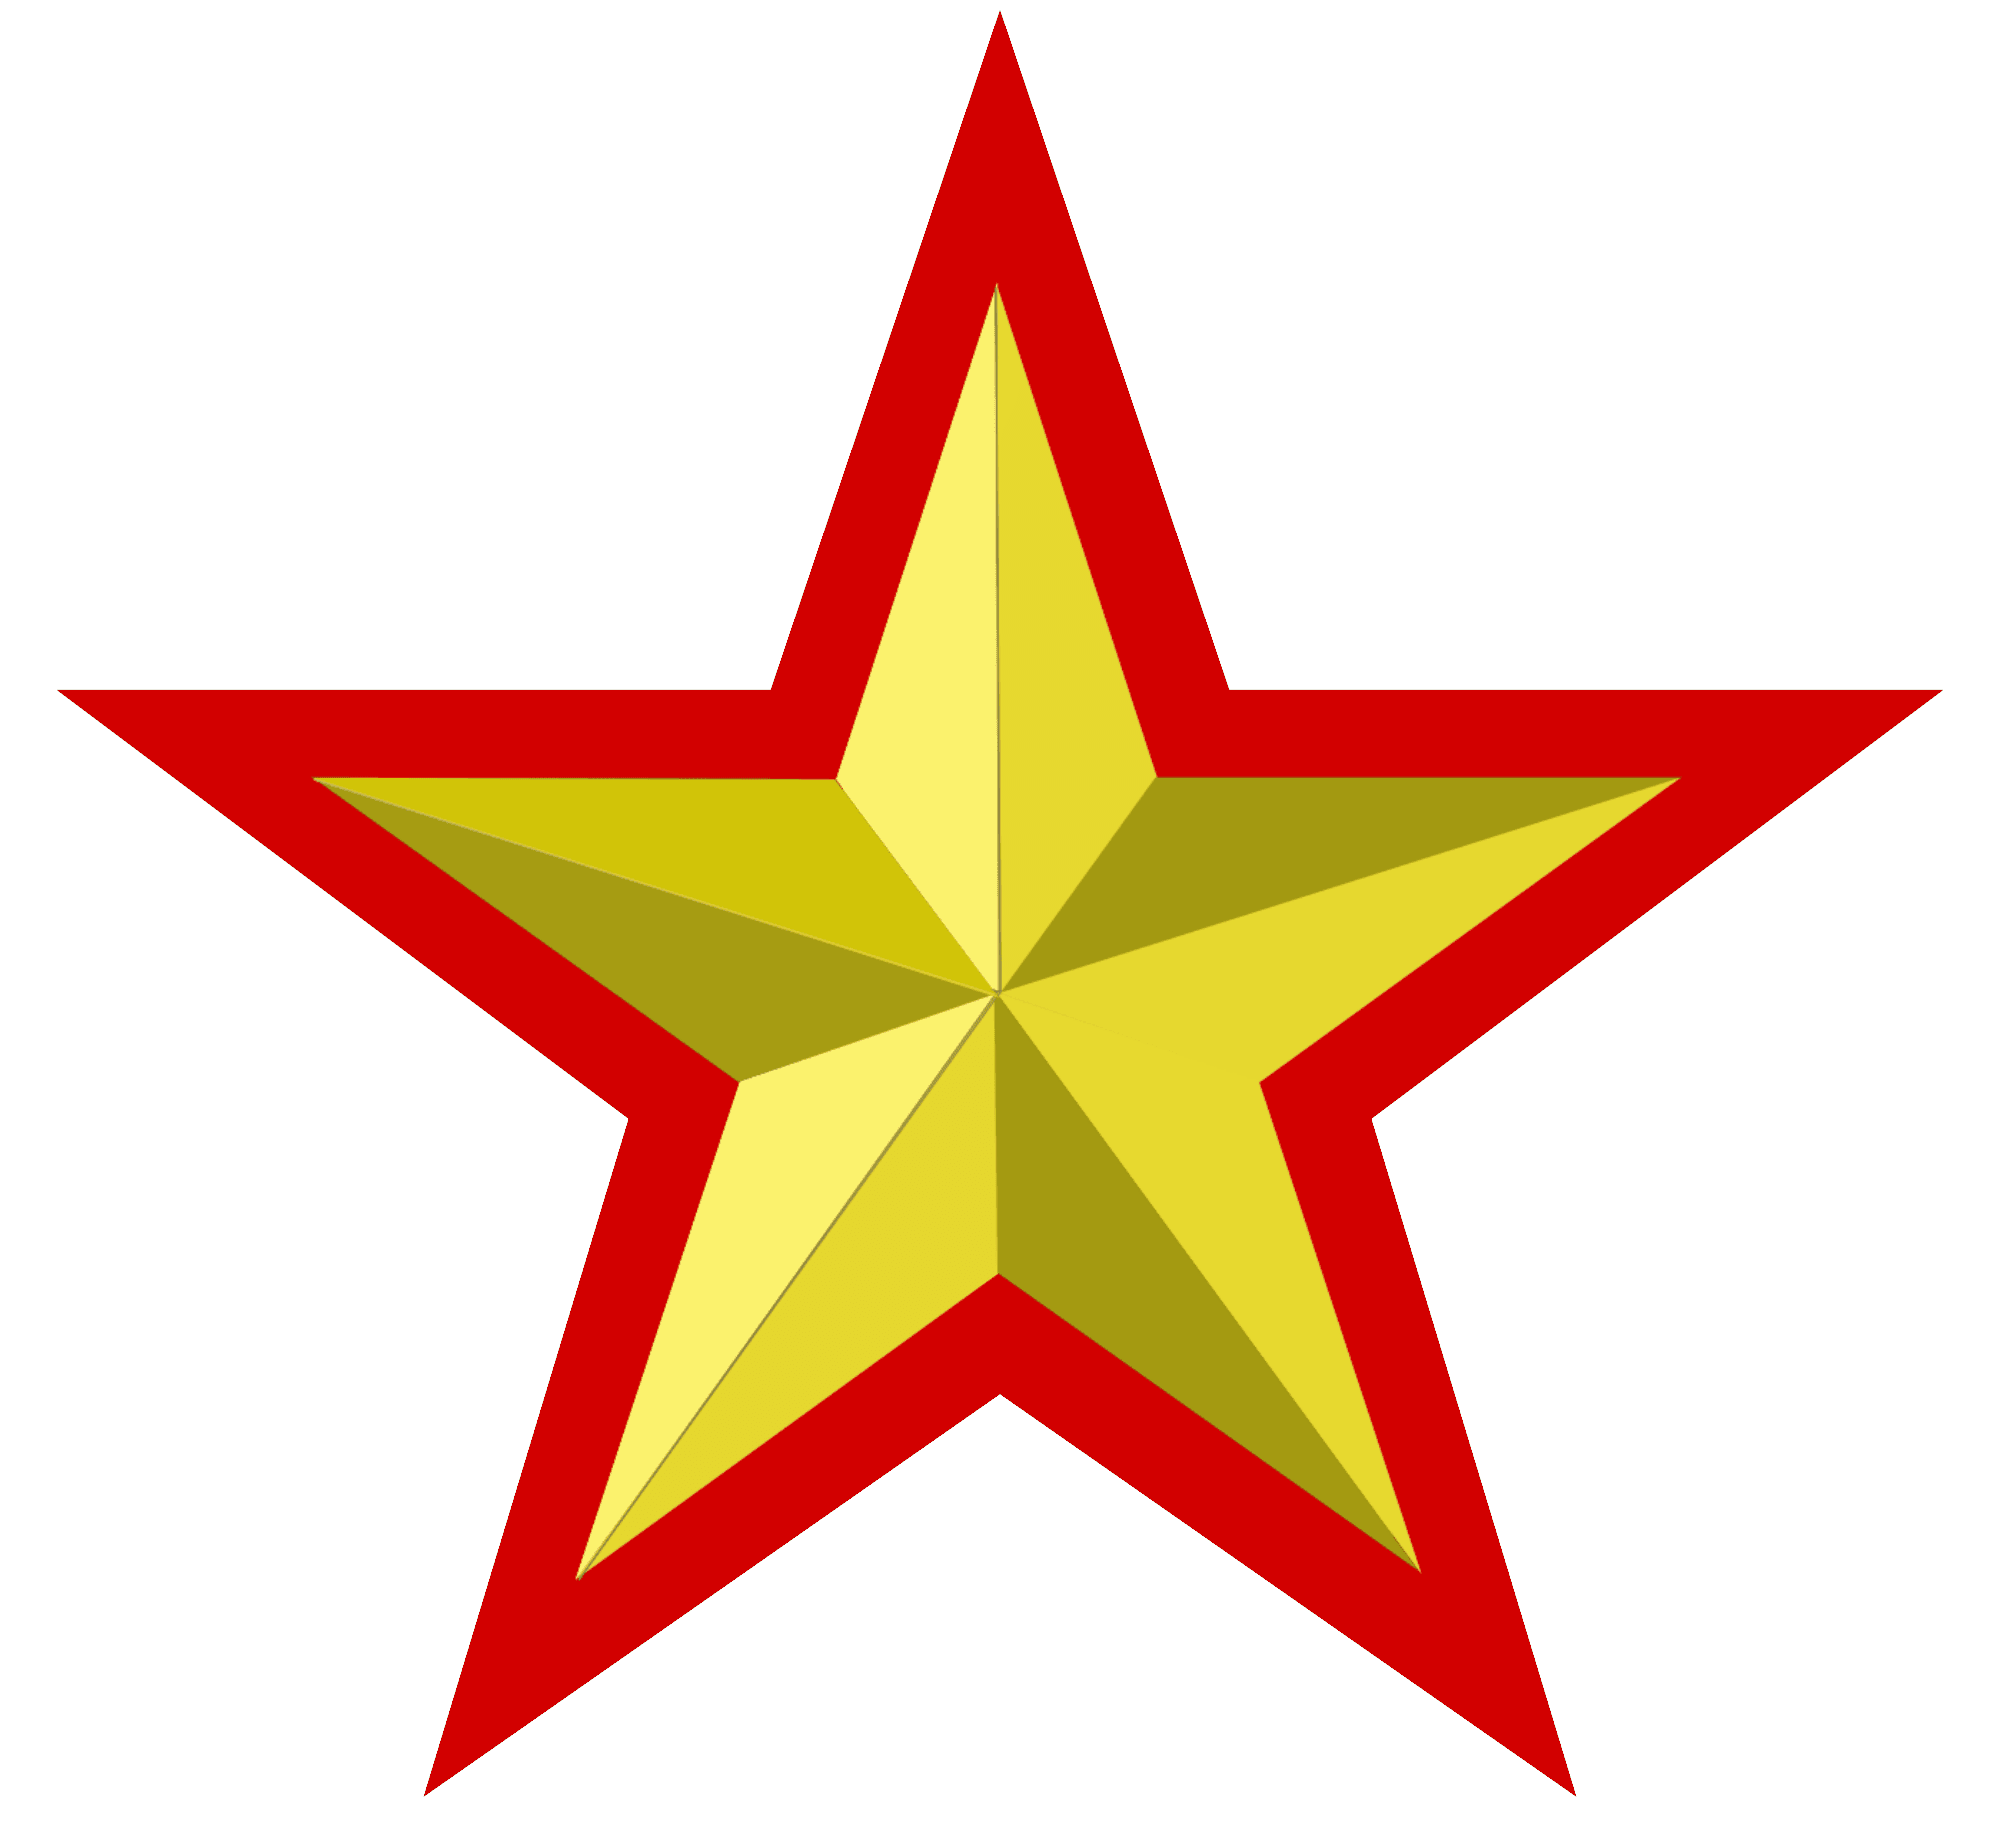 Golden_star_with_red_border.png